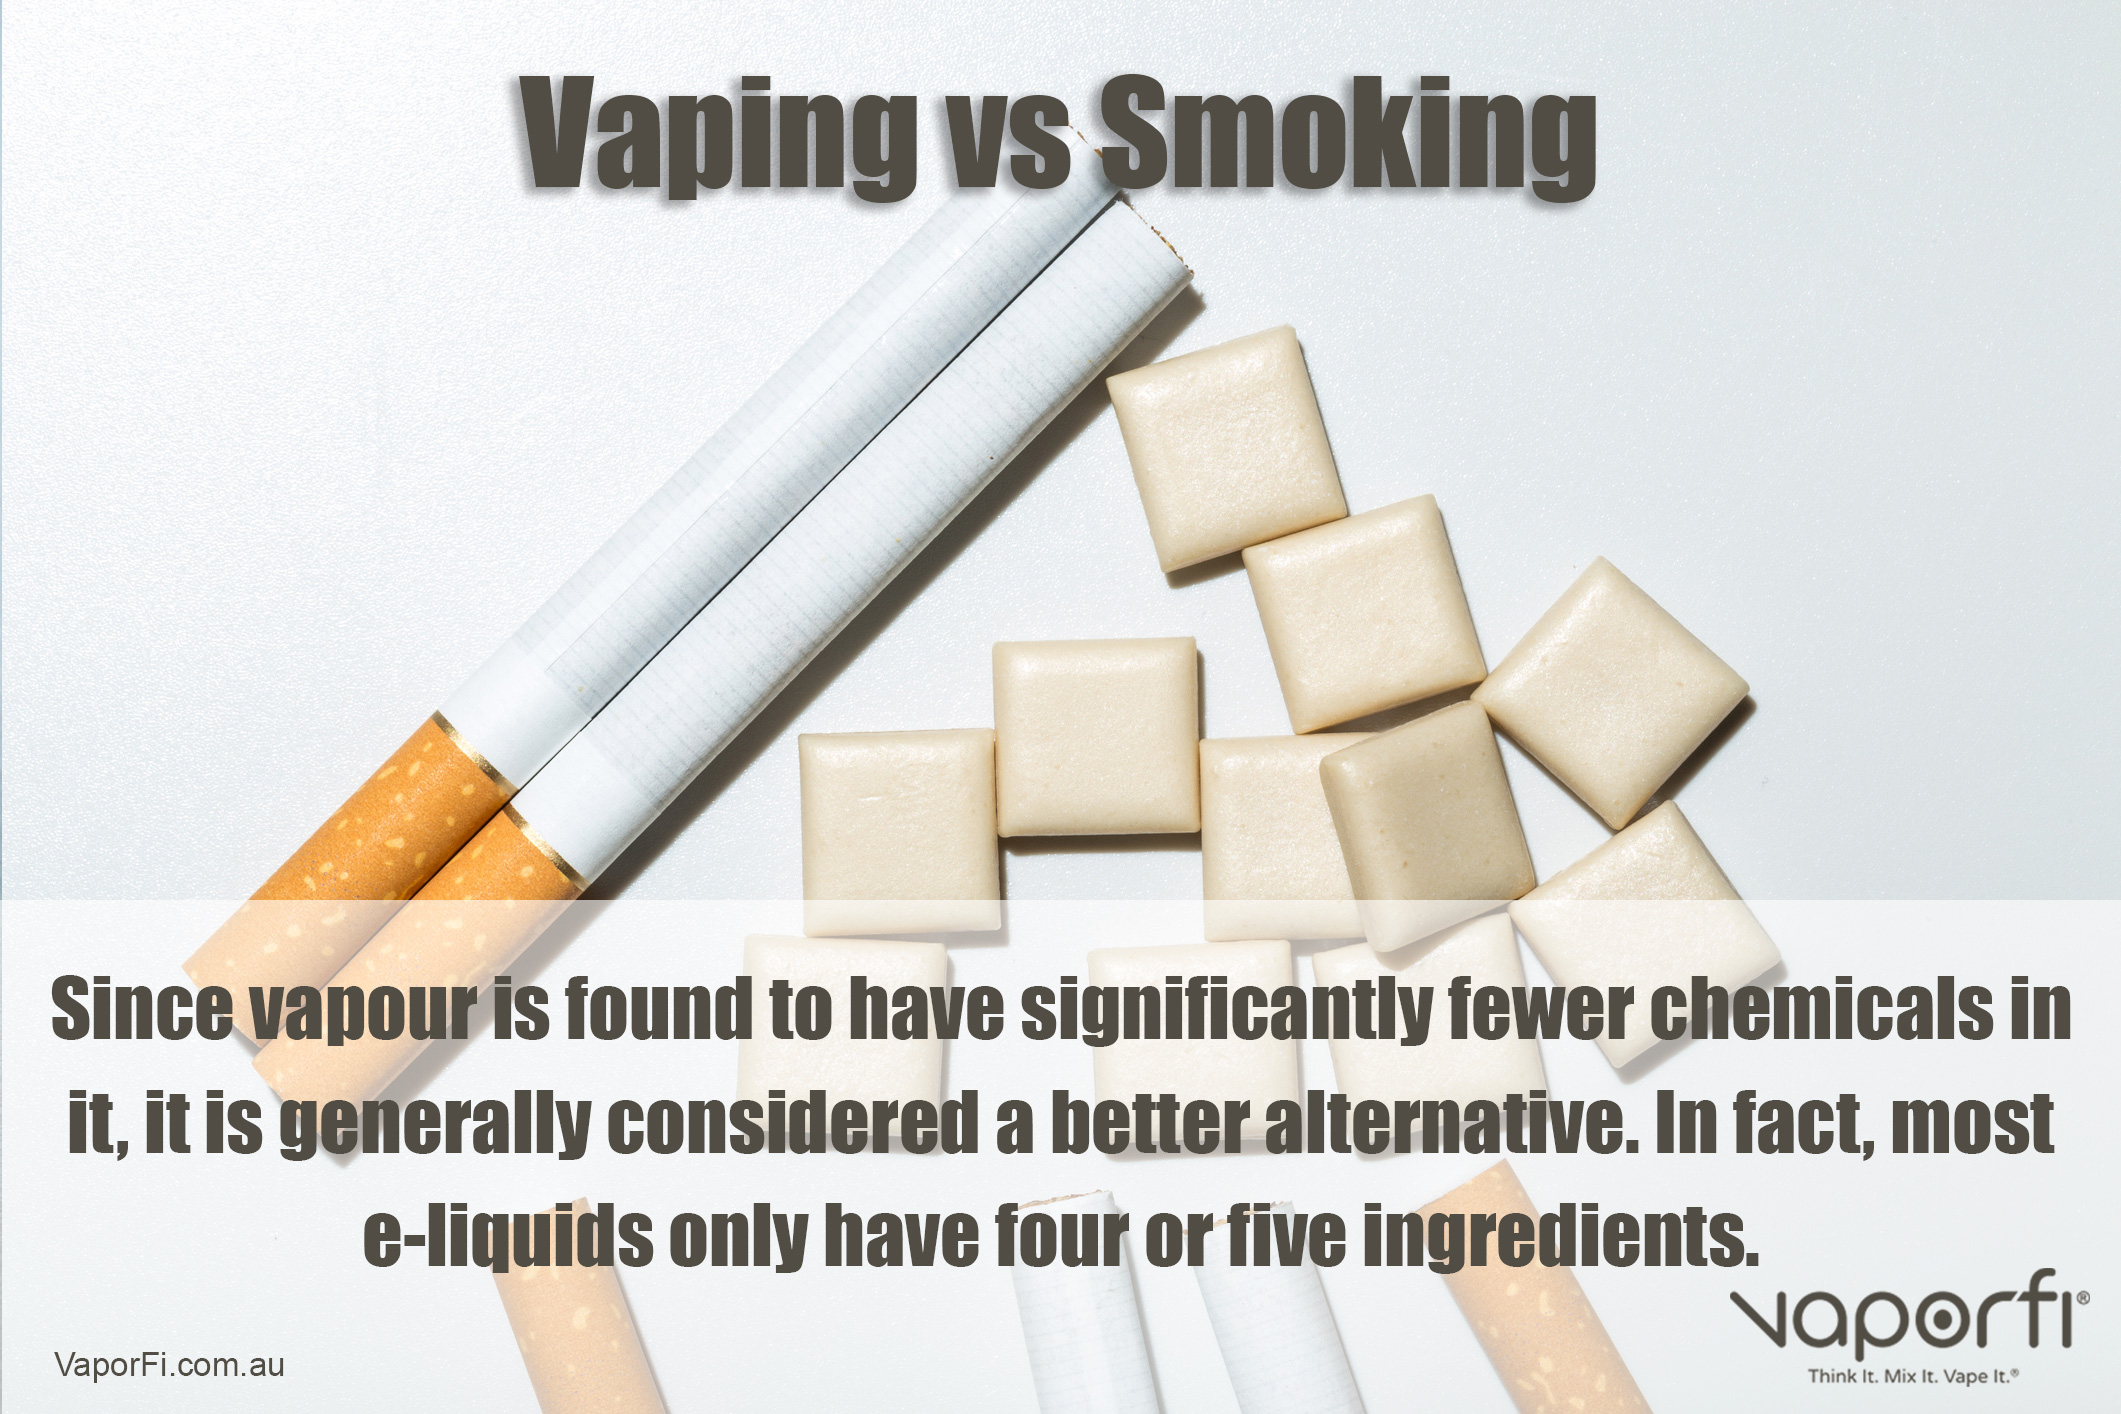 VaporFi Australia - Benefits of Vaping Versus Smoking: Substitute